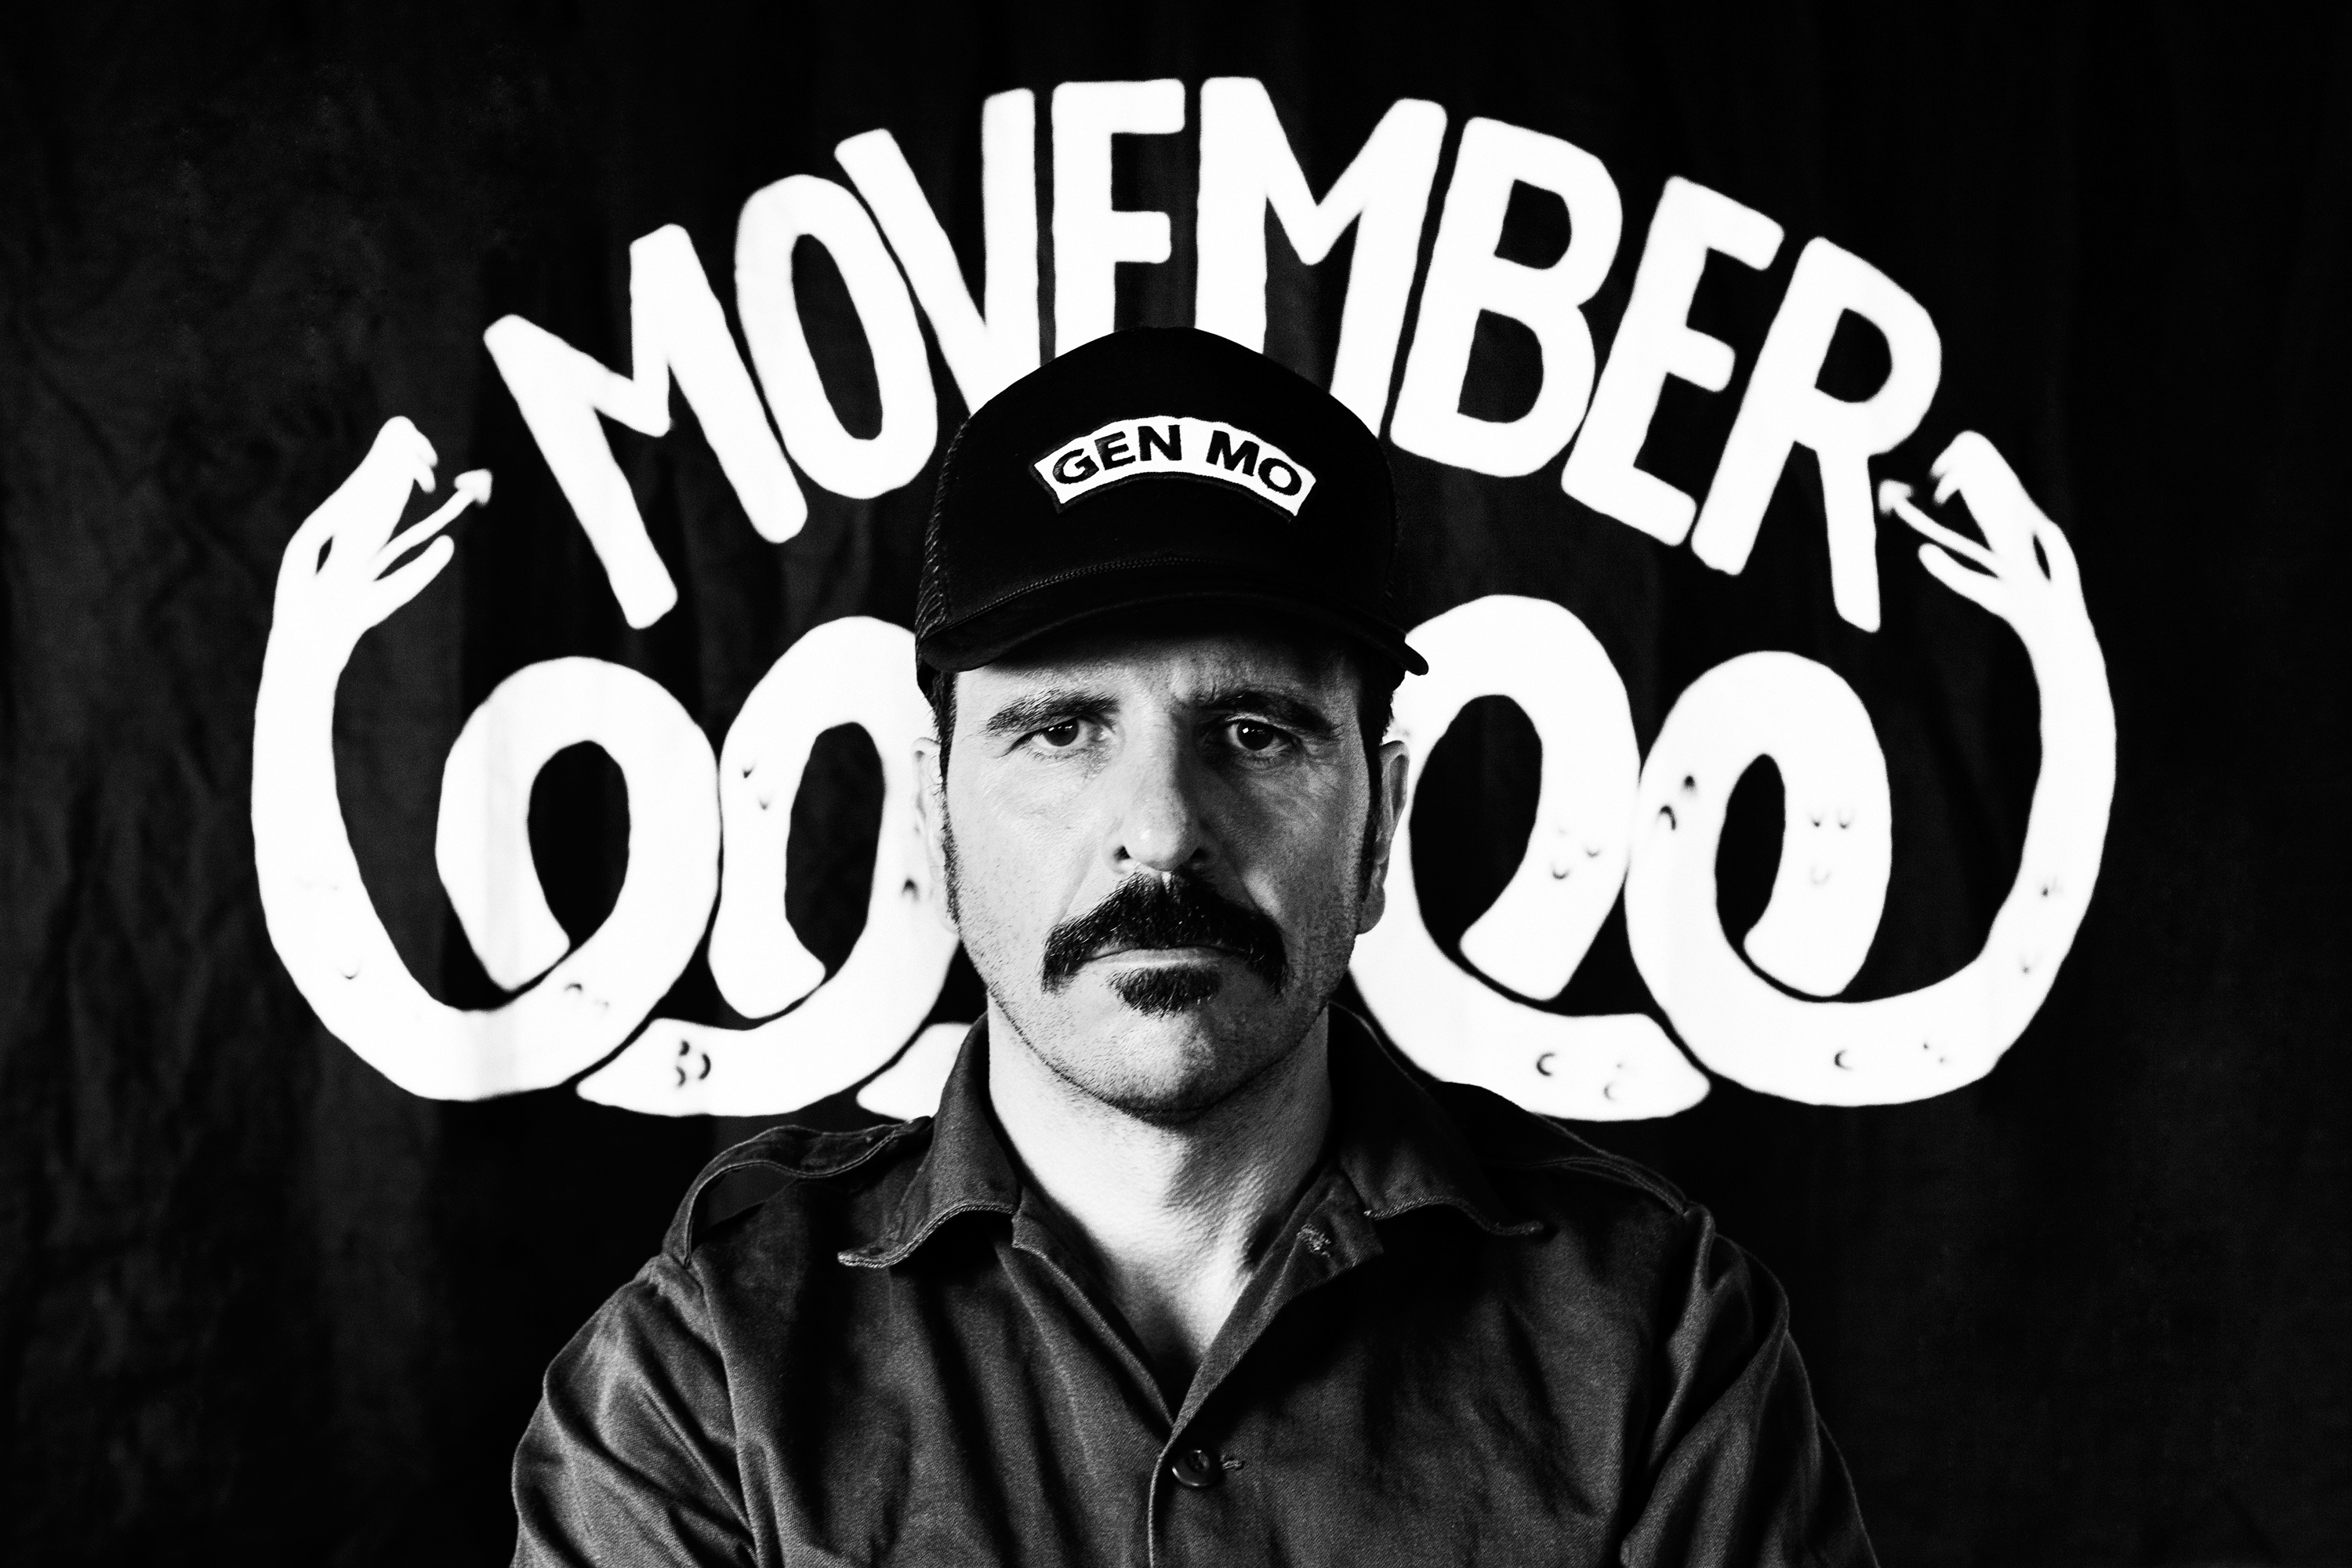 Movember 2013 - Generation Moustache